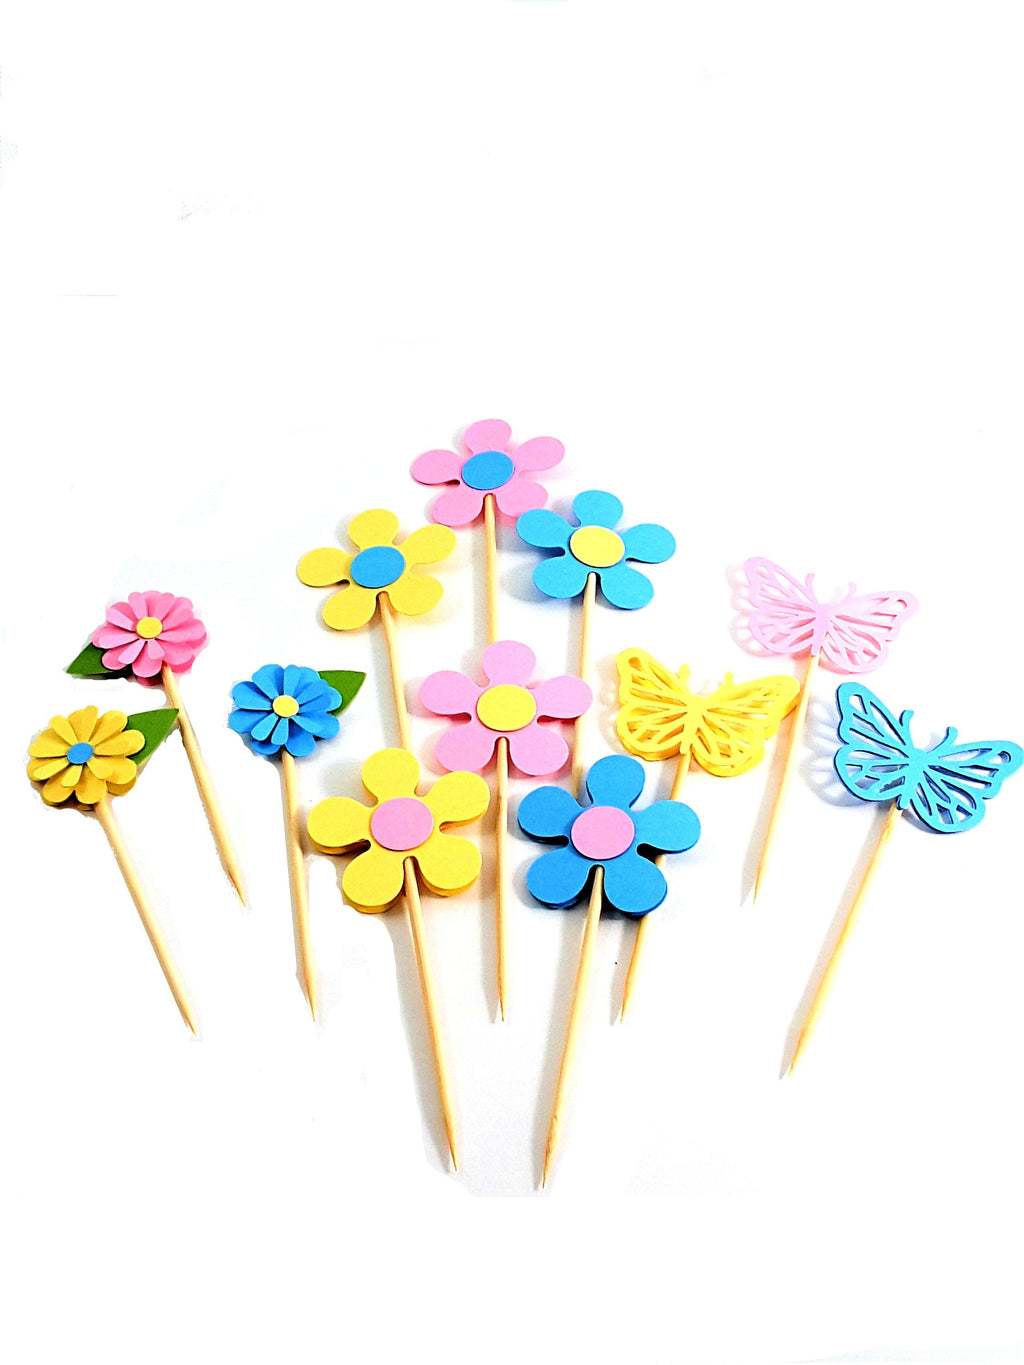 Solid Pastel Flower and Butterfly Cupcake Toppers for All Occasions, including Birthdays